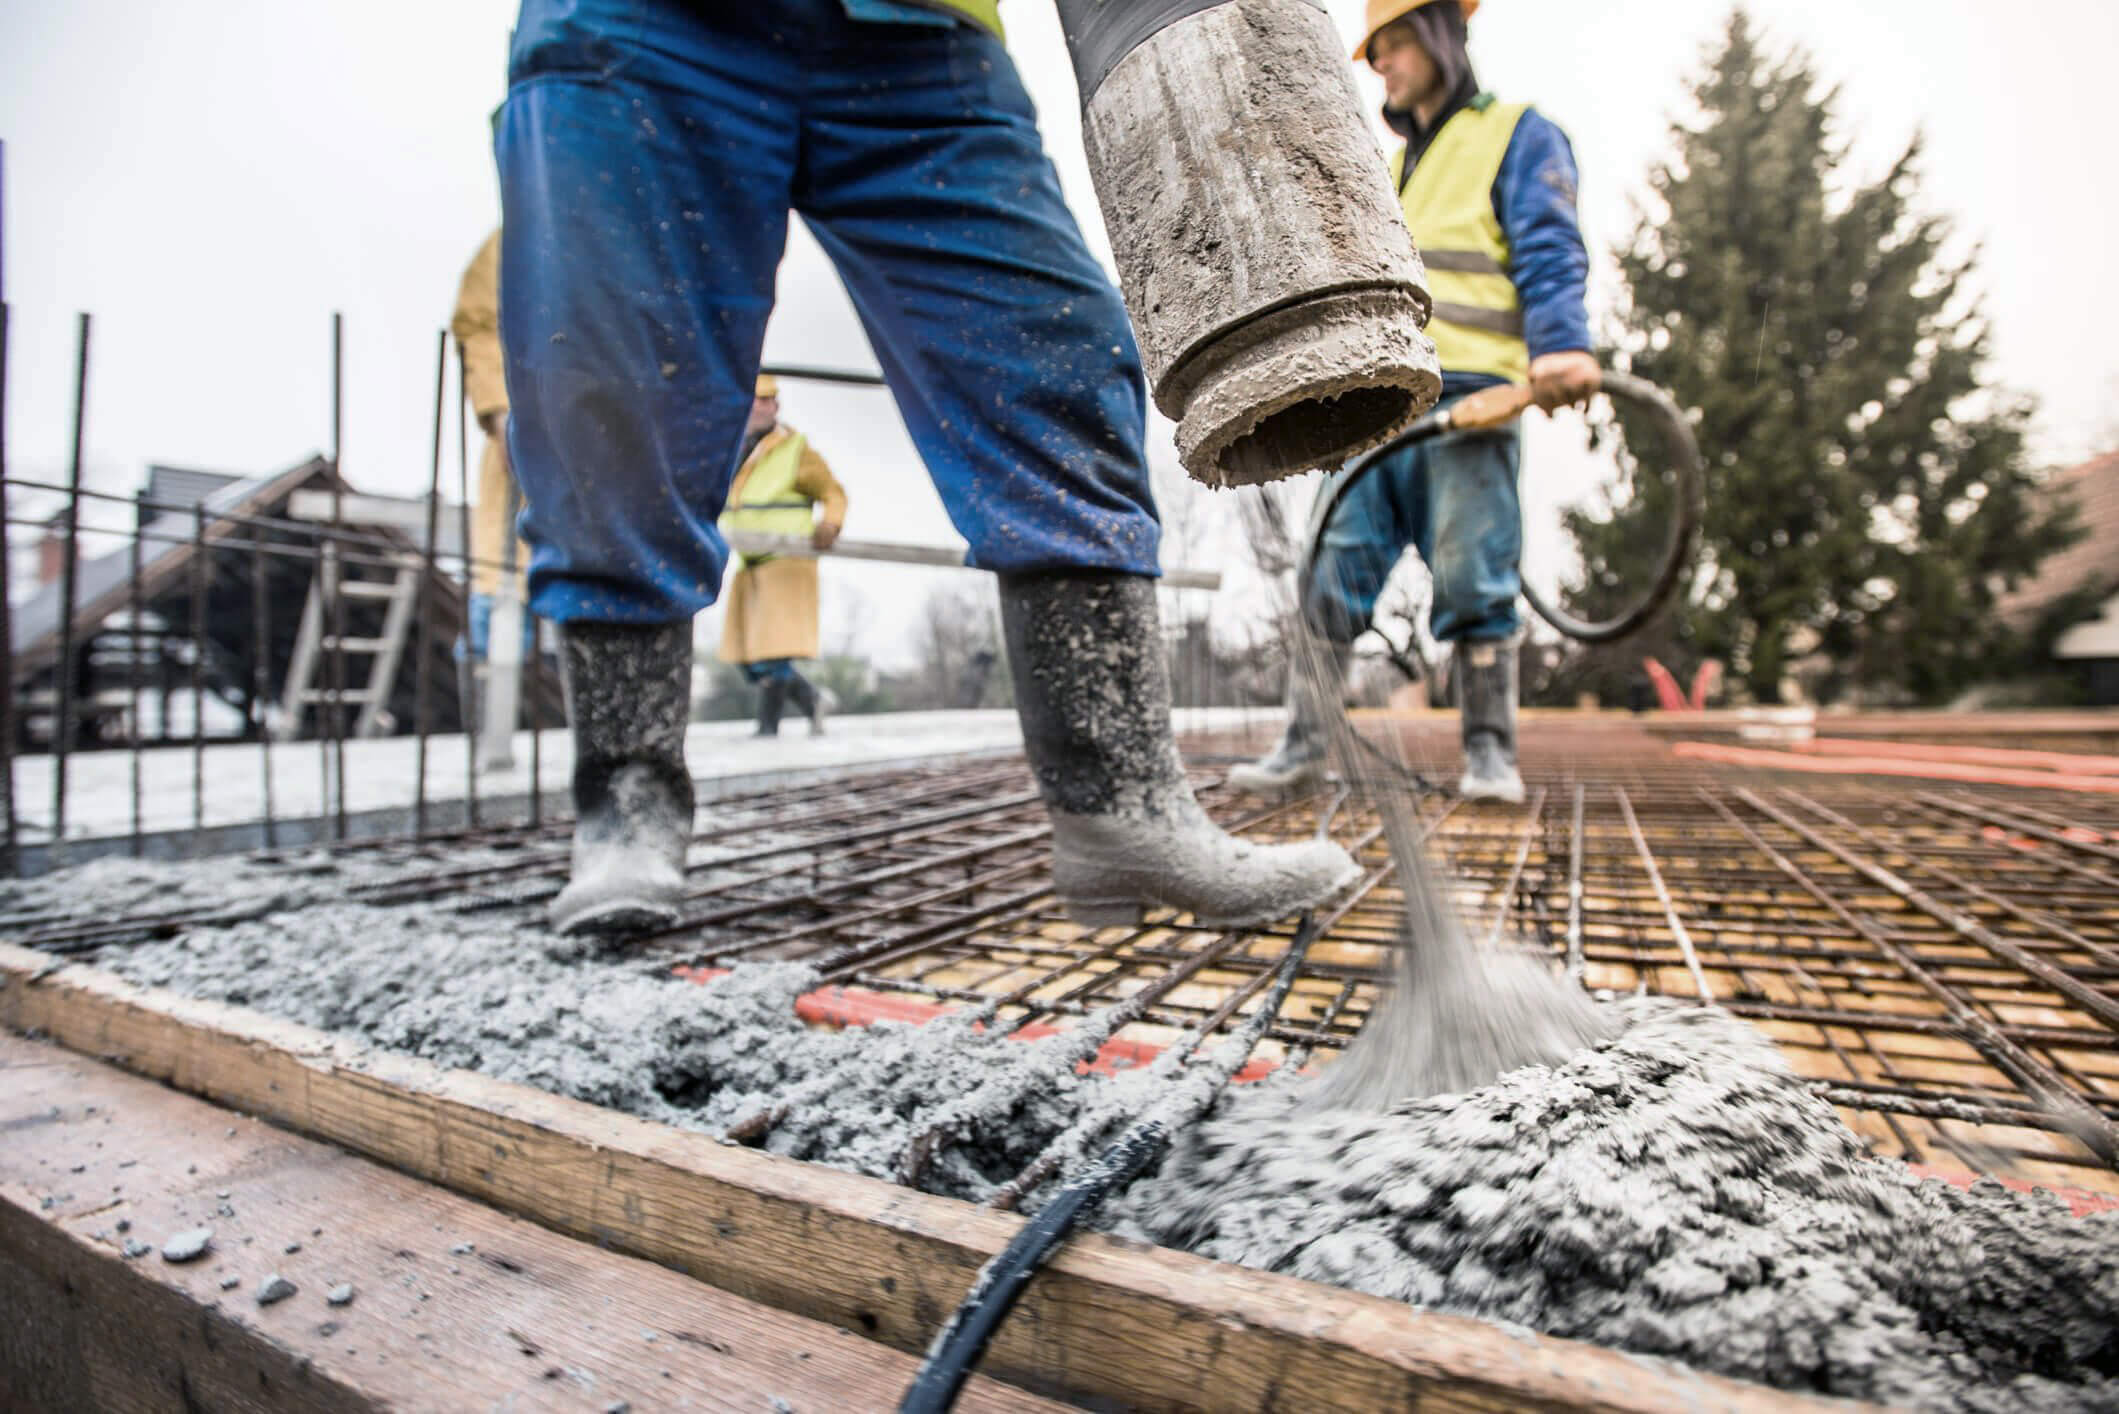 Fine cement powder tends to clump, making it difficult to transport and place. Pneumatic conveyors are used extensively to move cement powder from storage to production, and pneumatically powered aeration systems help keep it flowing. These systems consume large quantities of compressed air.